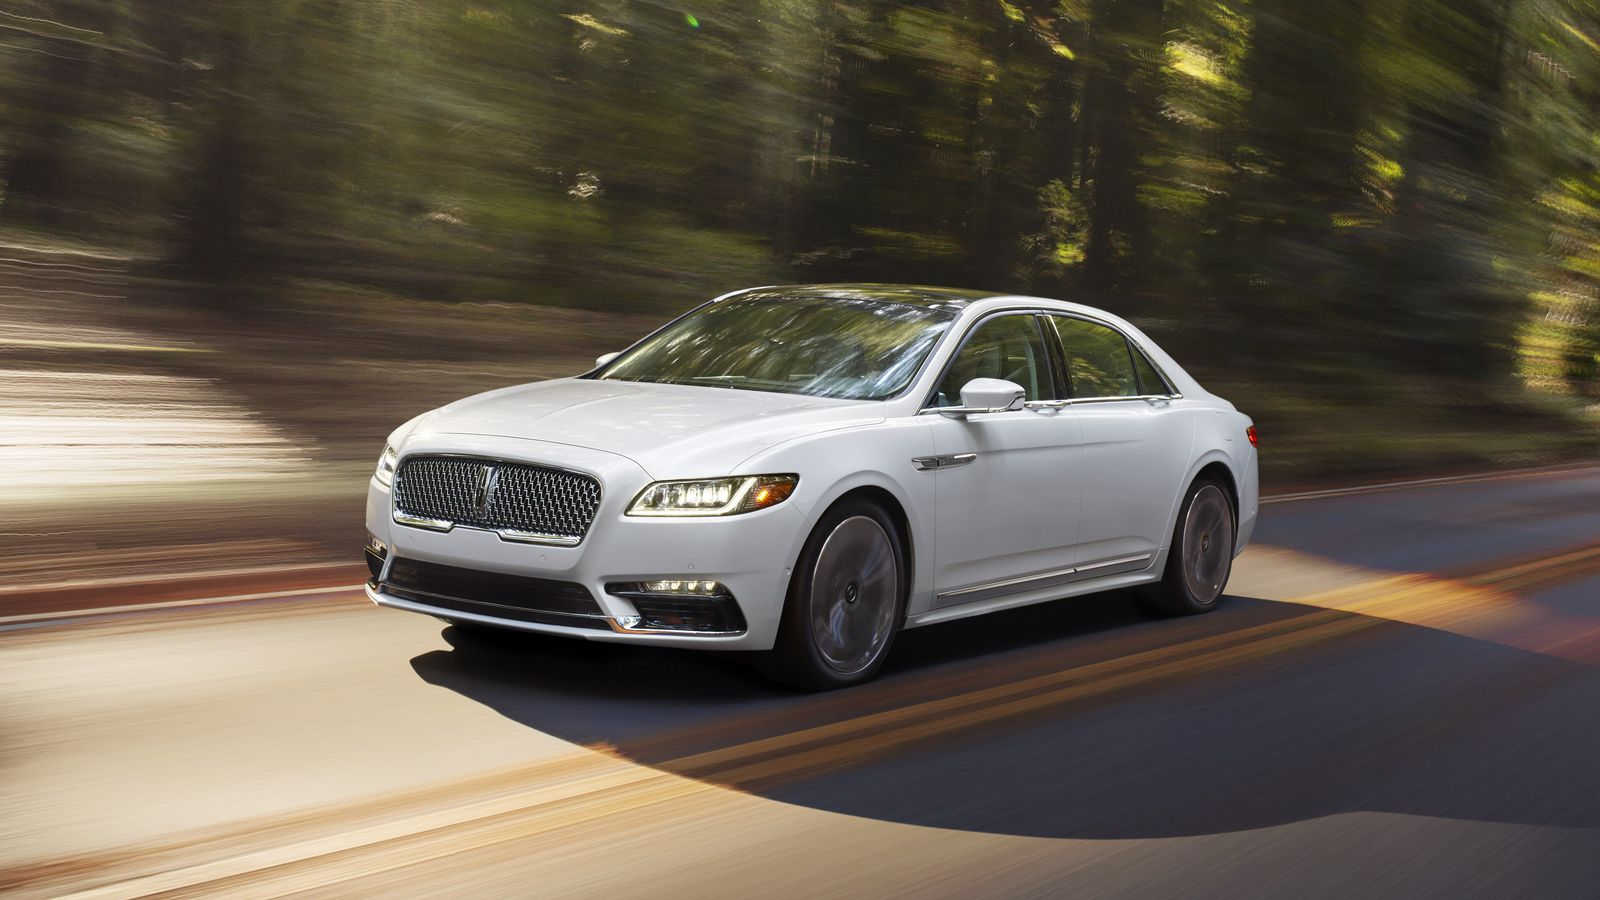 This Is The Lincoln Continental A Plush Luxury Sedan For Backseat